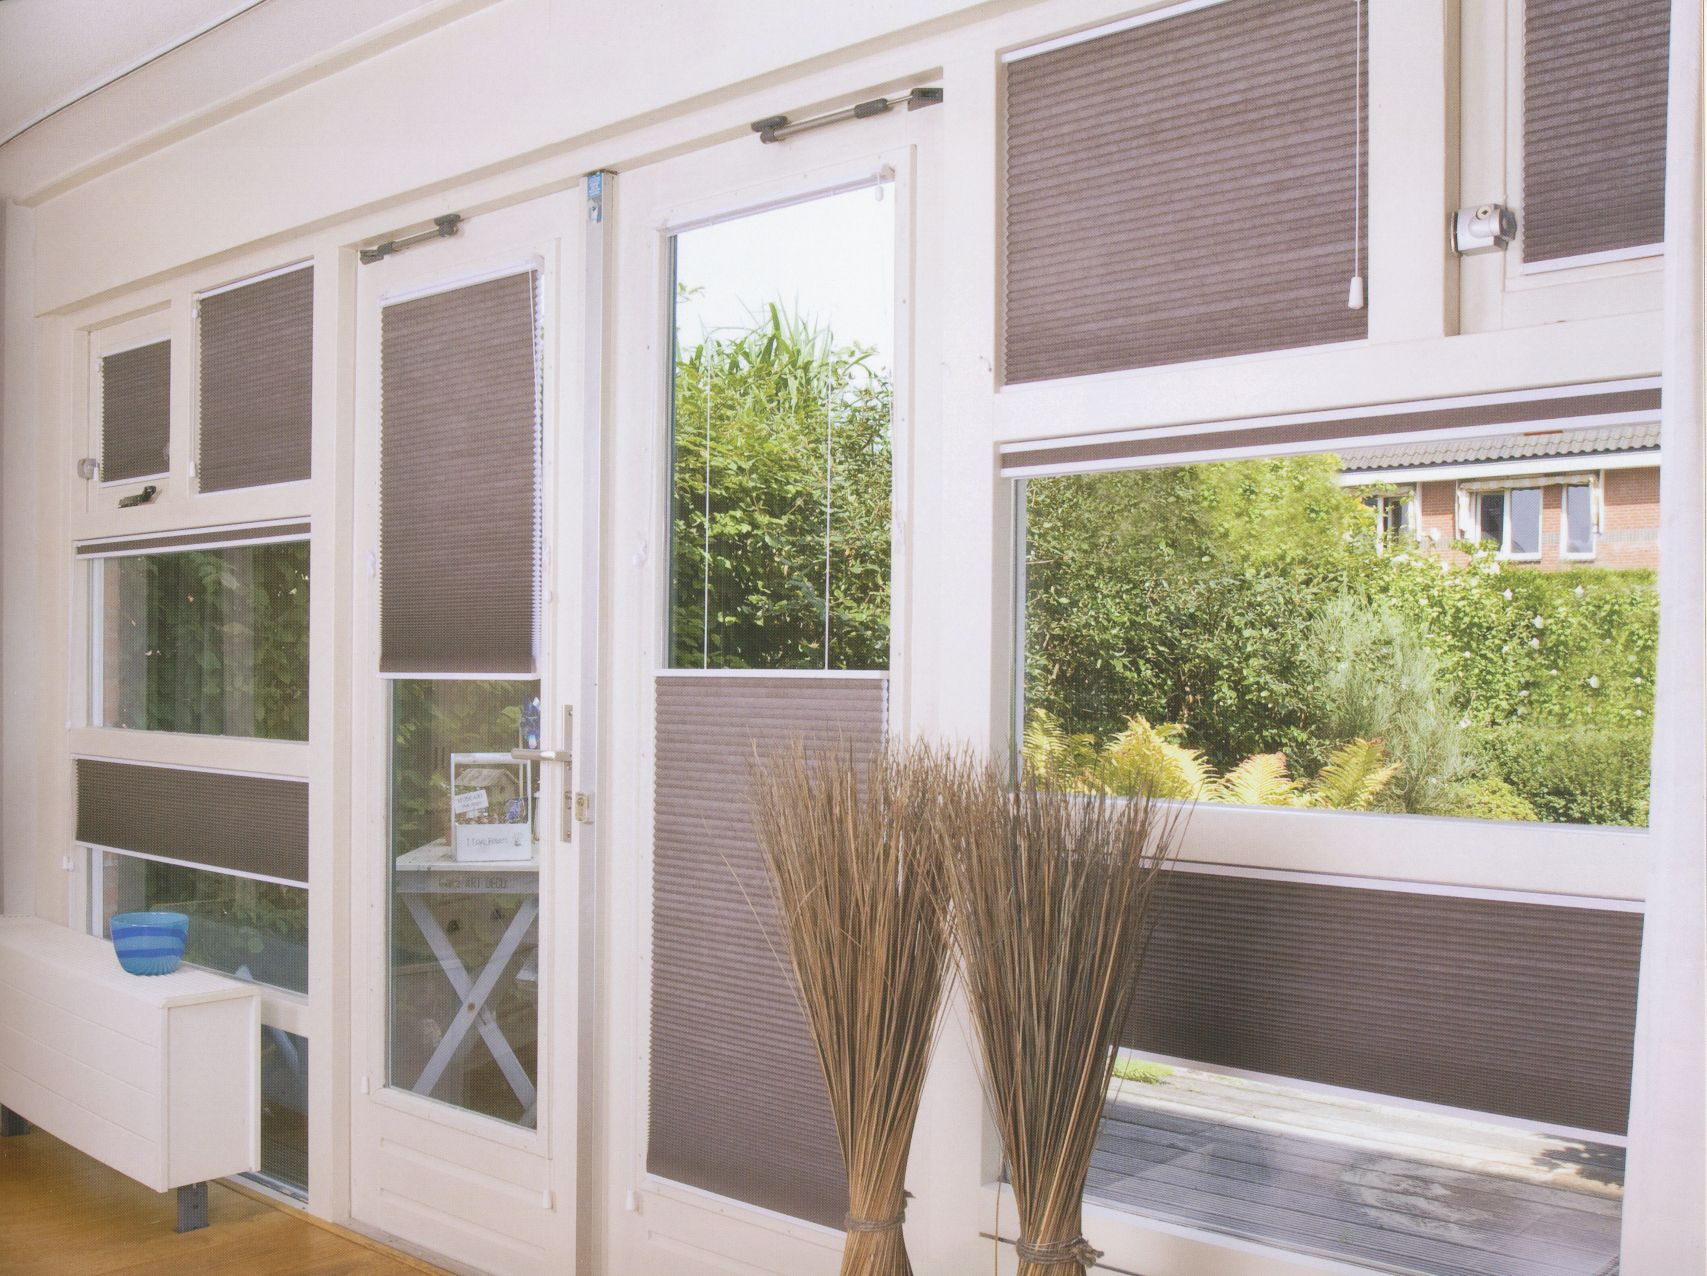 Curtains blackout honeycomb shades blackout shades blinds blinds and - Best Window Treatments For Media Room Blackout Cell Shades Are Lined Inside With Mylar So